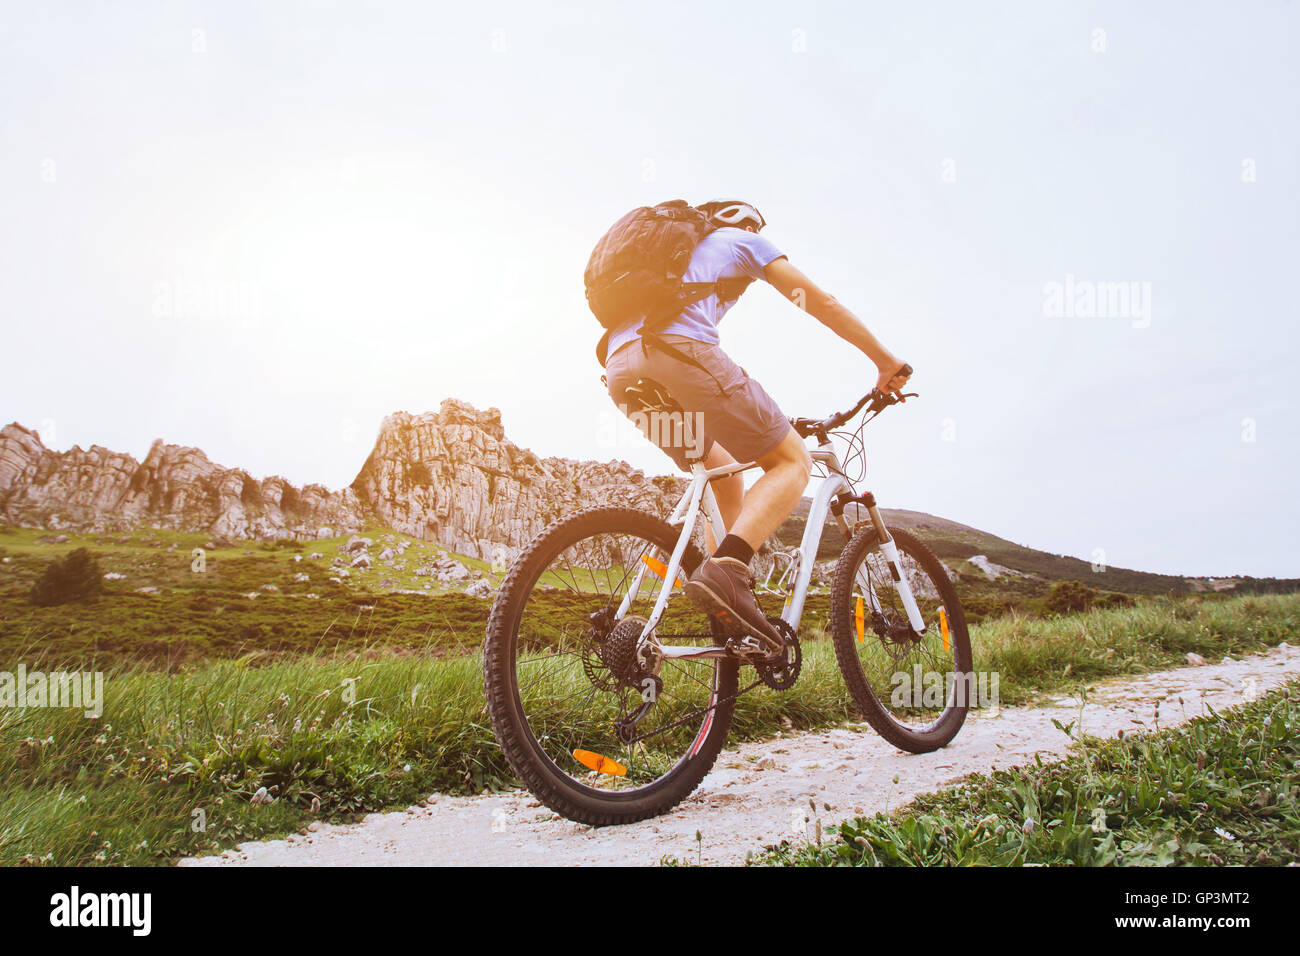 mountain bike, cycling outside, extreme sports - Stock Image